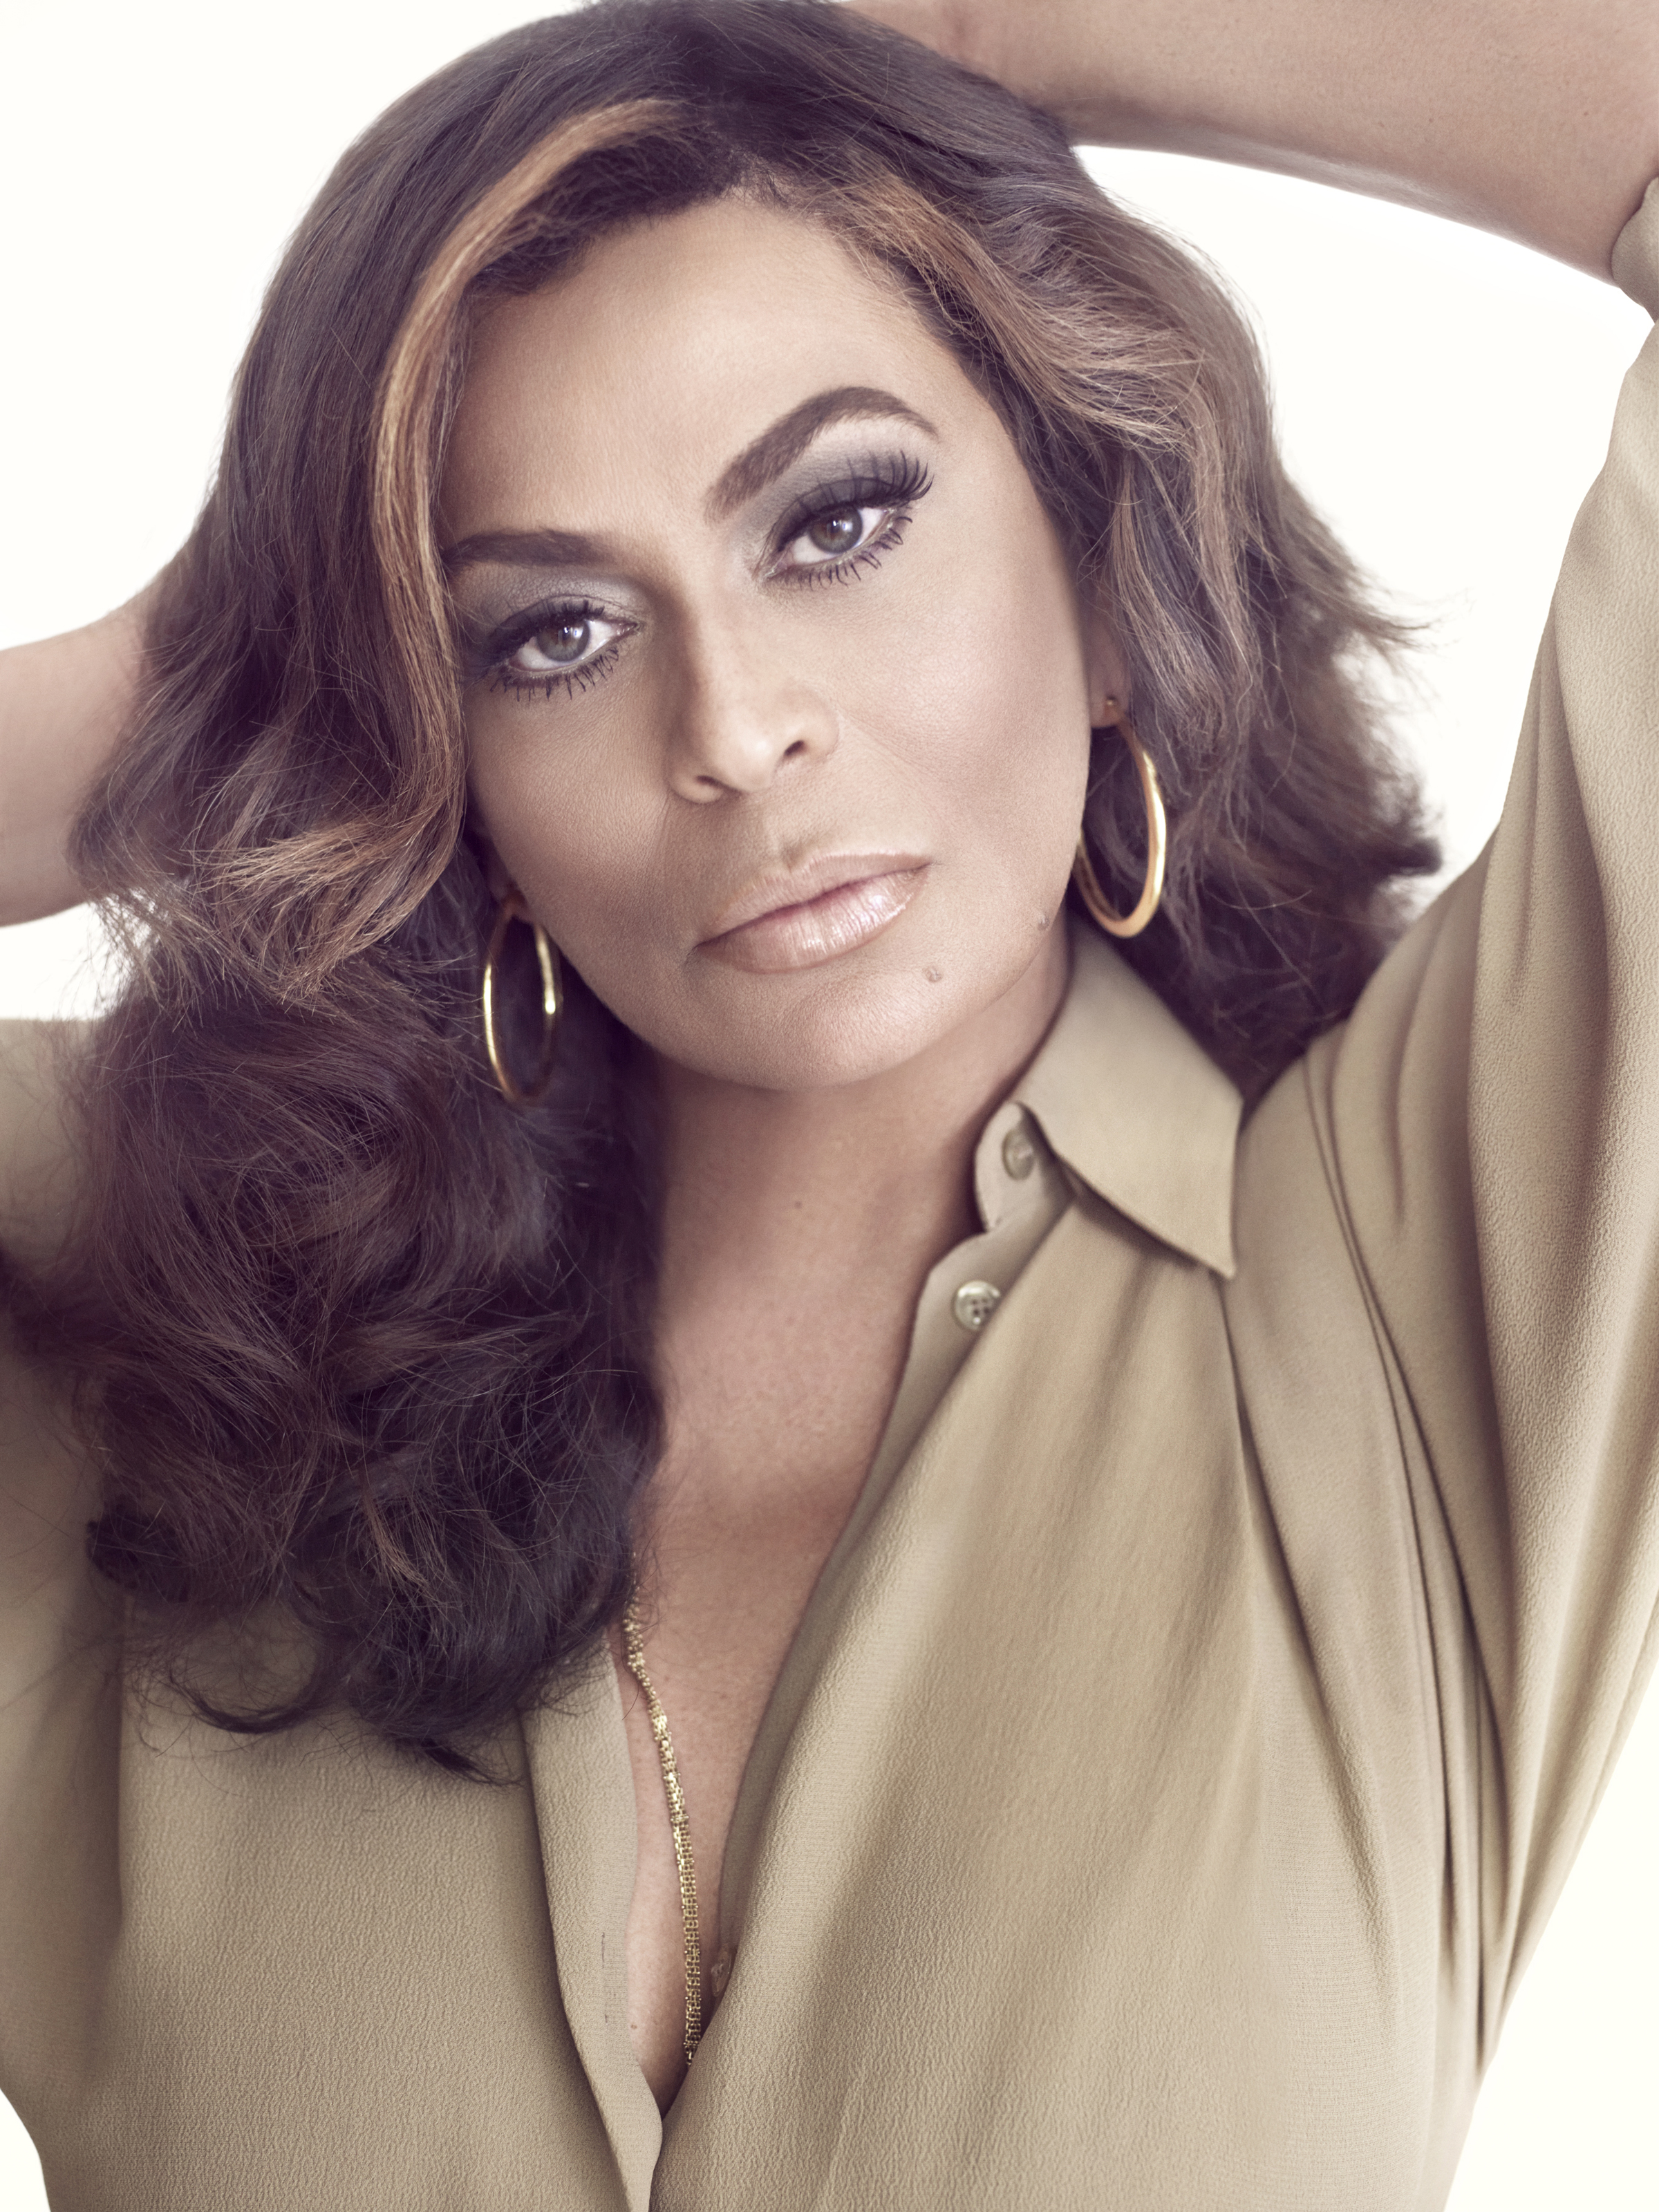 Clothing Designers Named Ann Tina Knowles